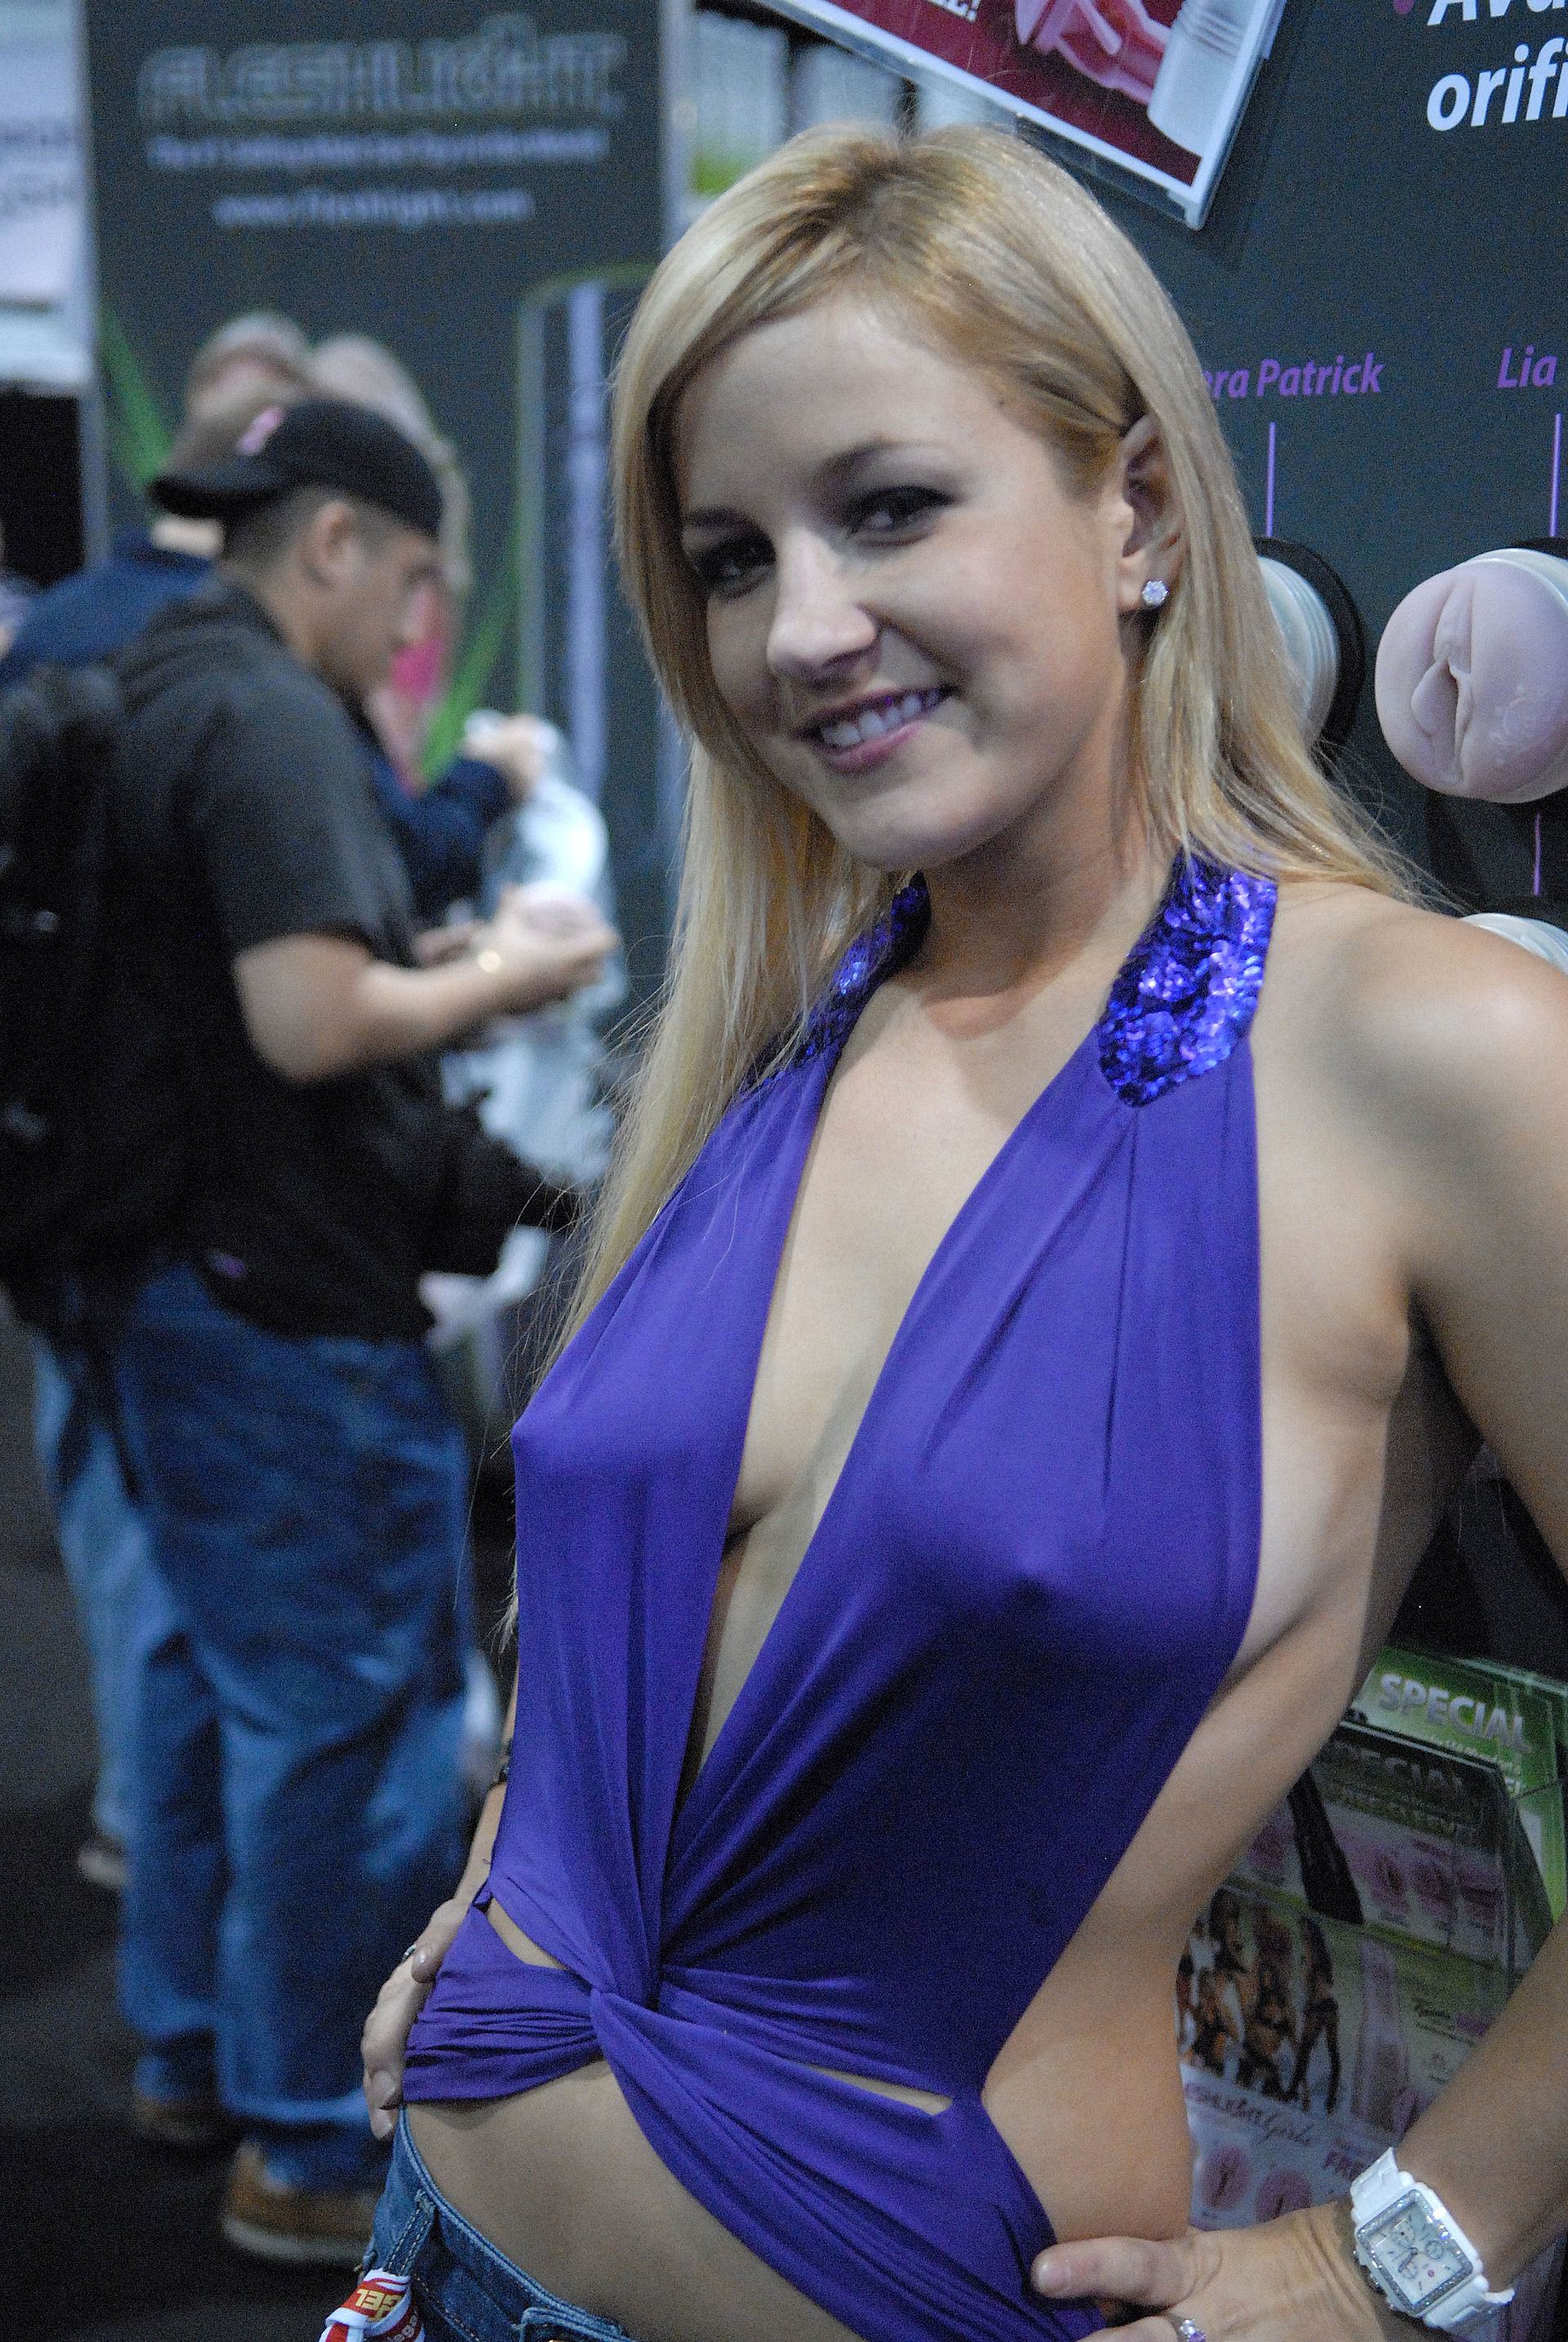 Description Lia at AVN Adult Entertainment Expo 2009.jpg